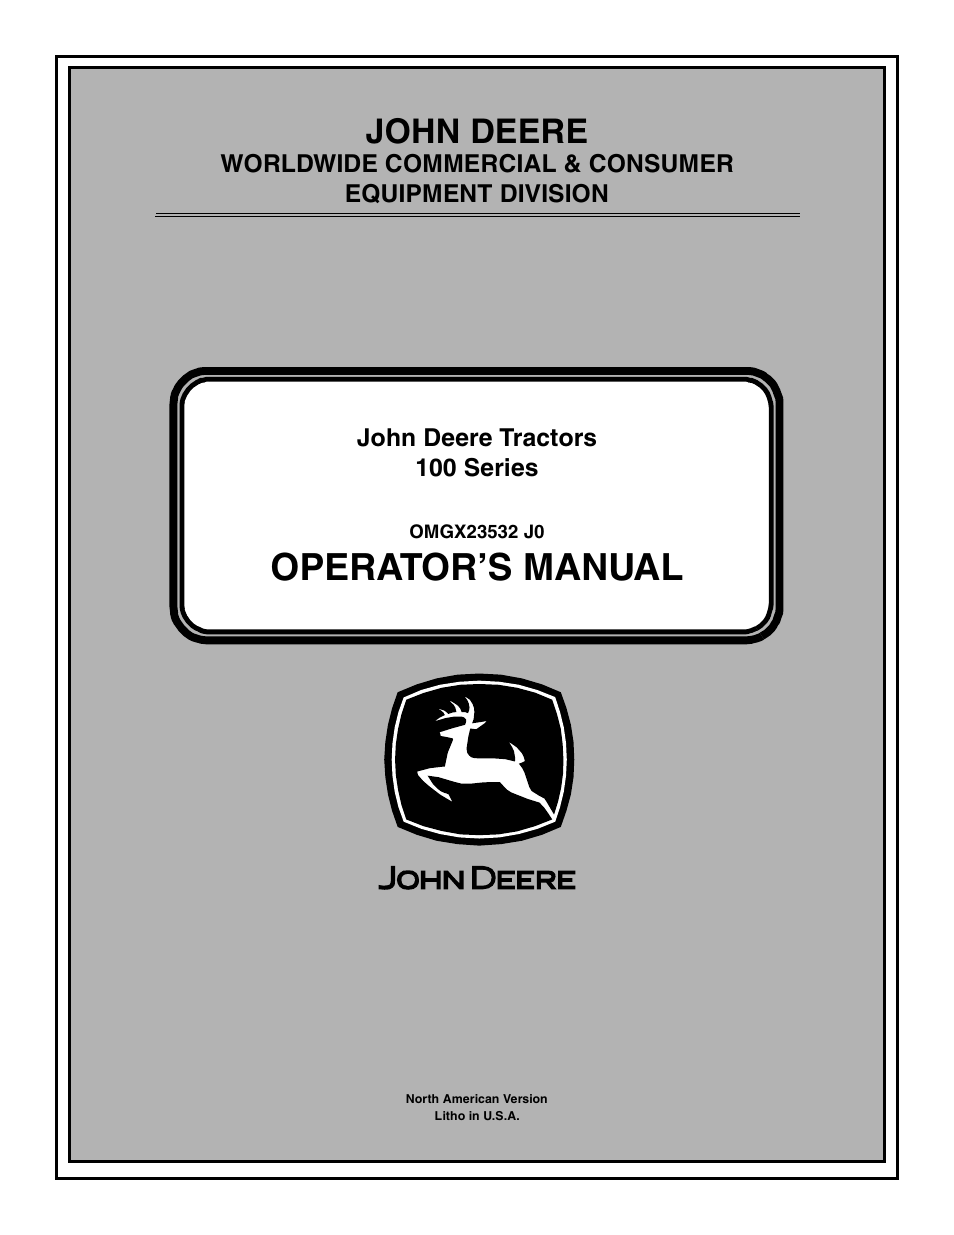 John Deere Tractor 100 Series OMG X23532 J0 User Manual | 56 pages | Also  for: D100, D110, D120, D130, D140, D150, D160, D170